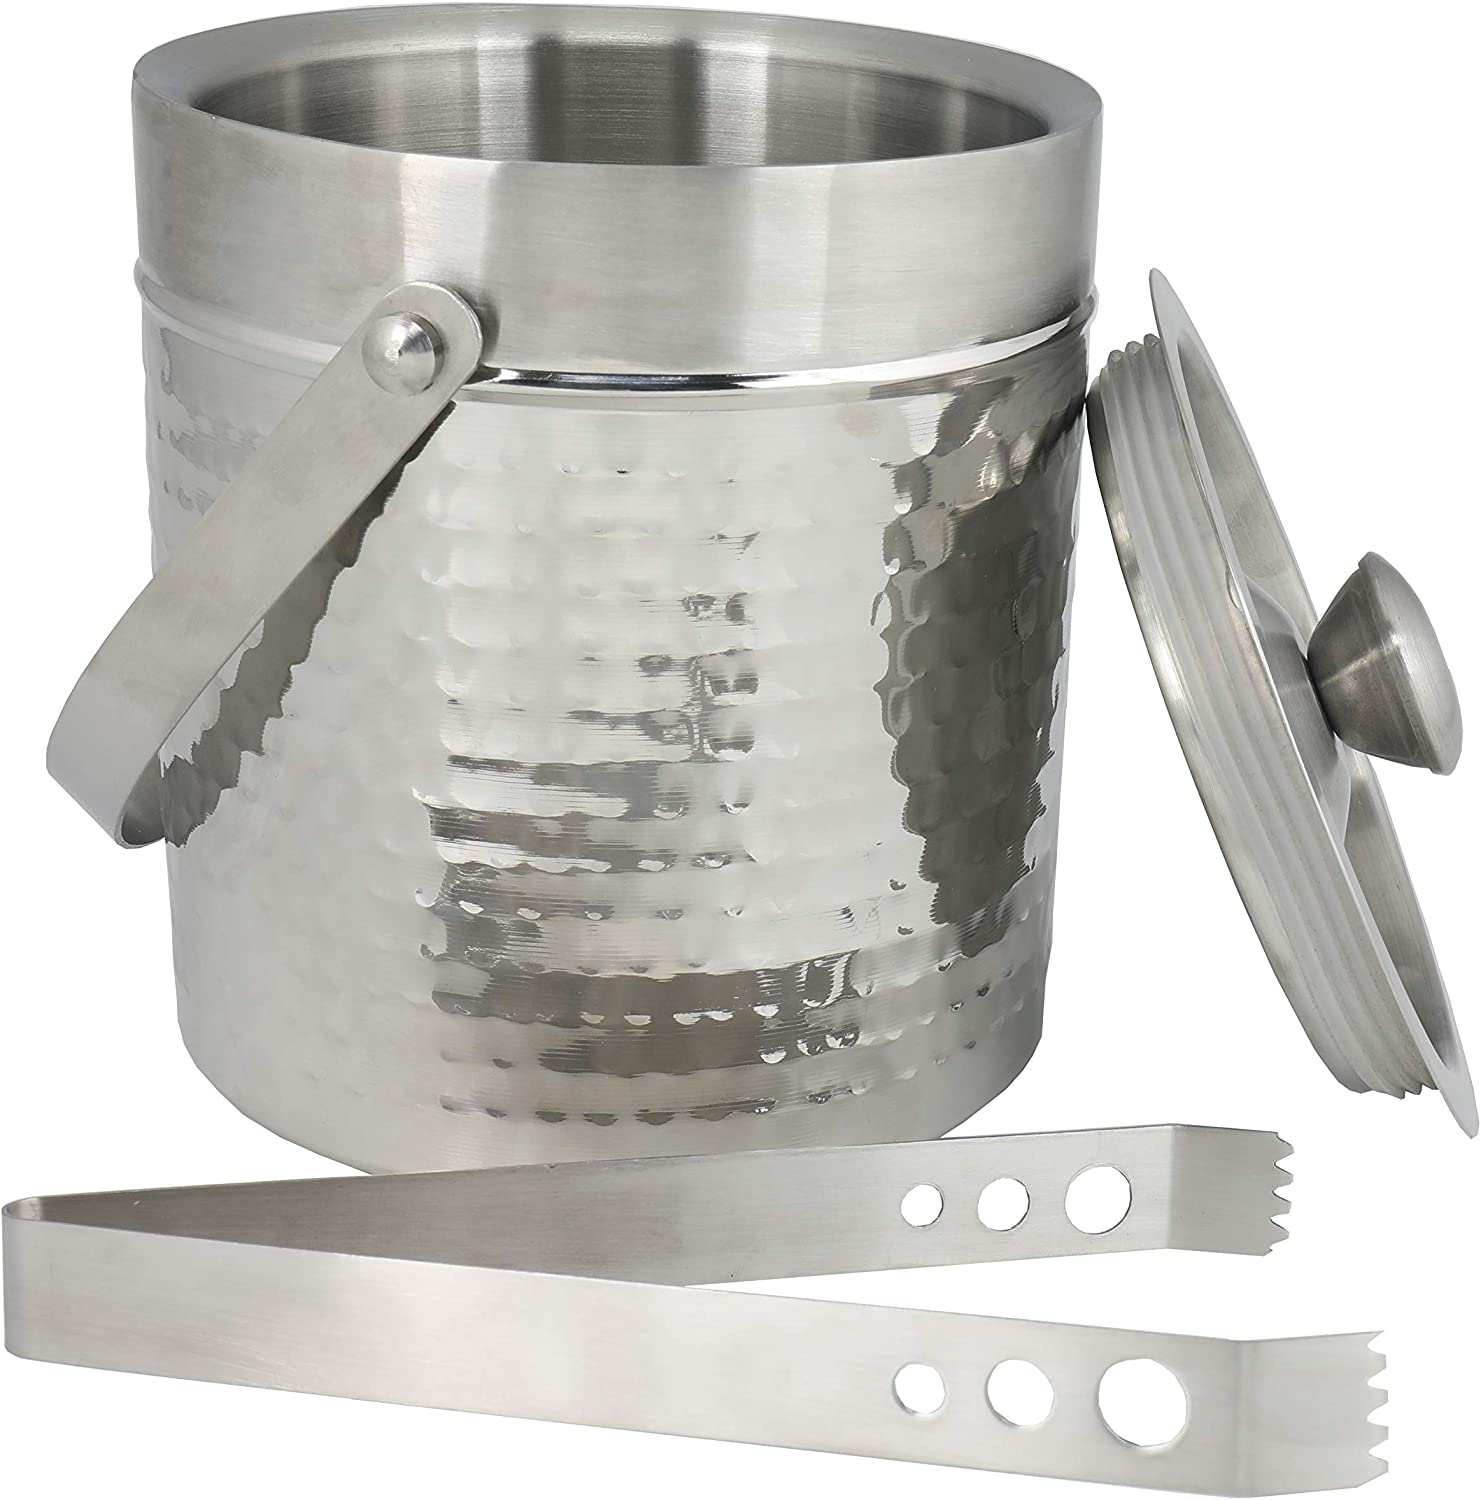 Chef Craft Hammered Double Walled Ice low-pricing Bucket OFFicial site 2 Steel Stainless